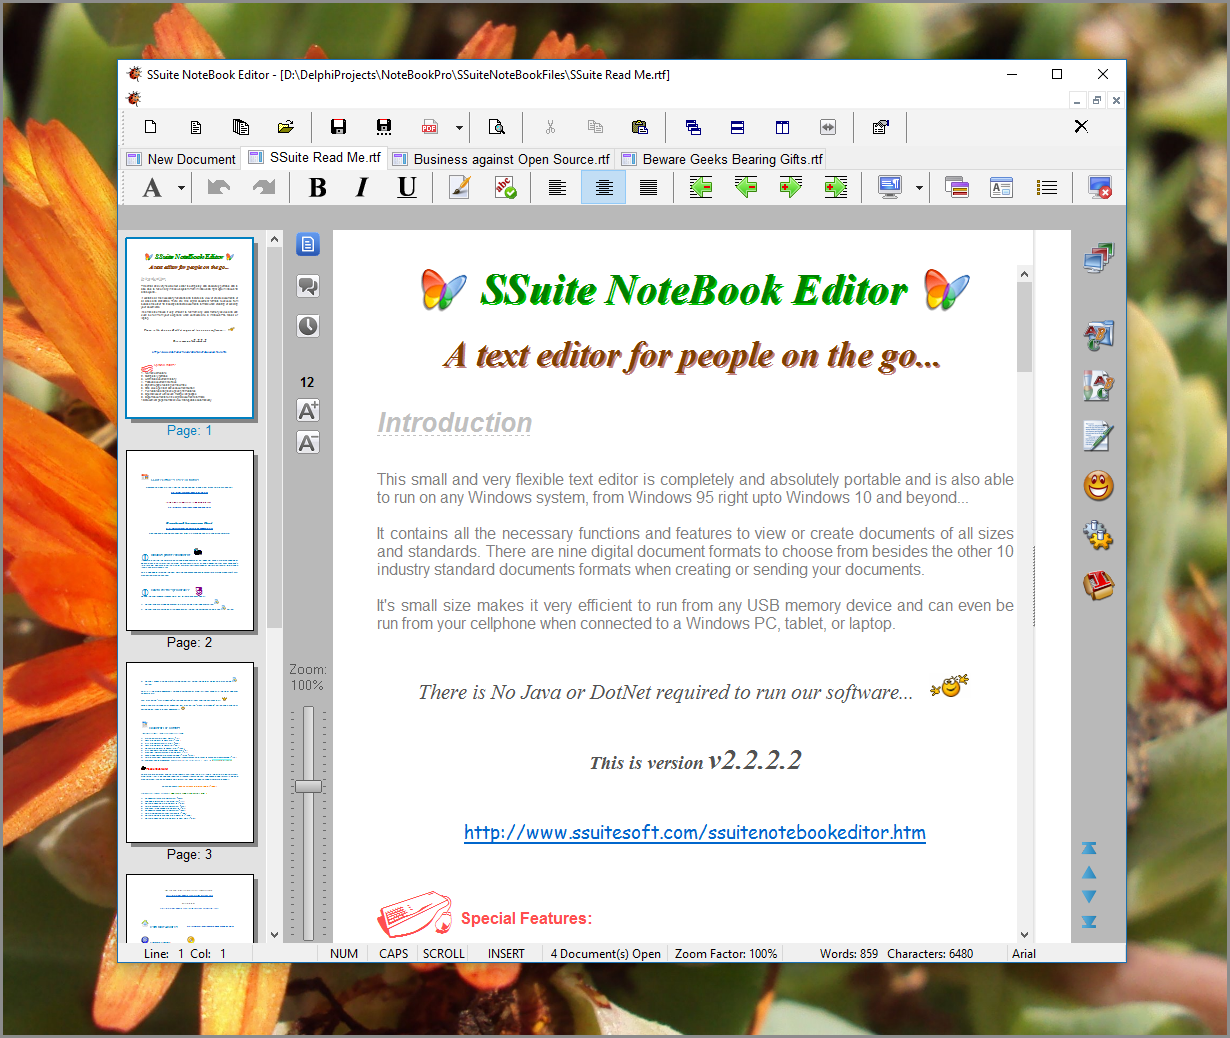 SSuite NoteBook Editor